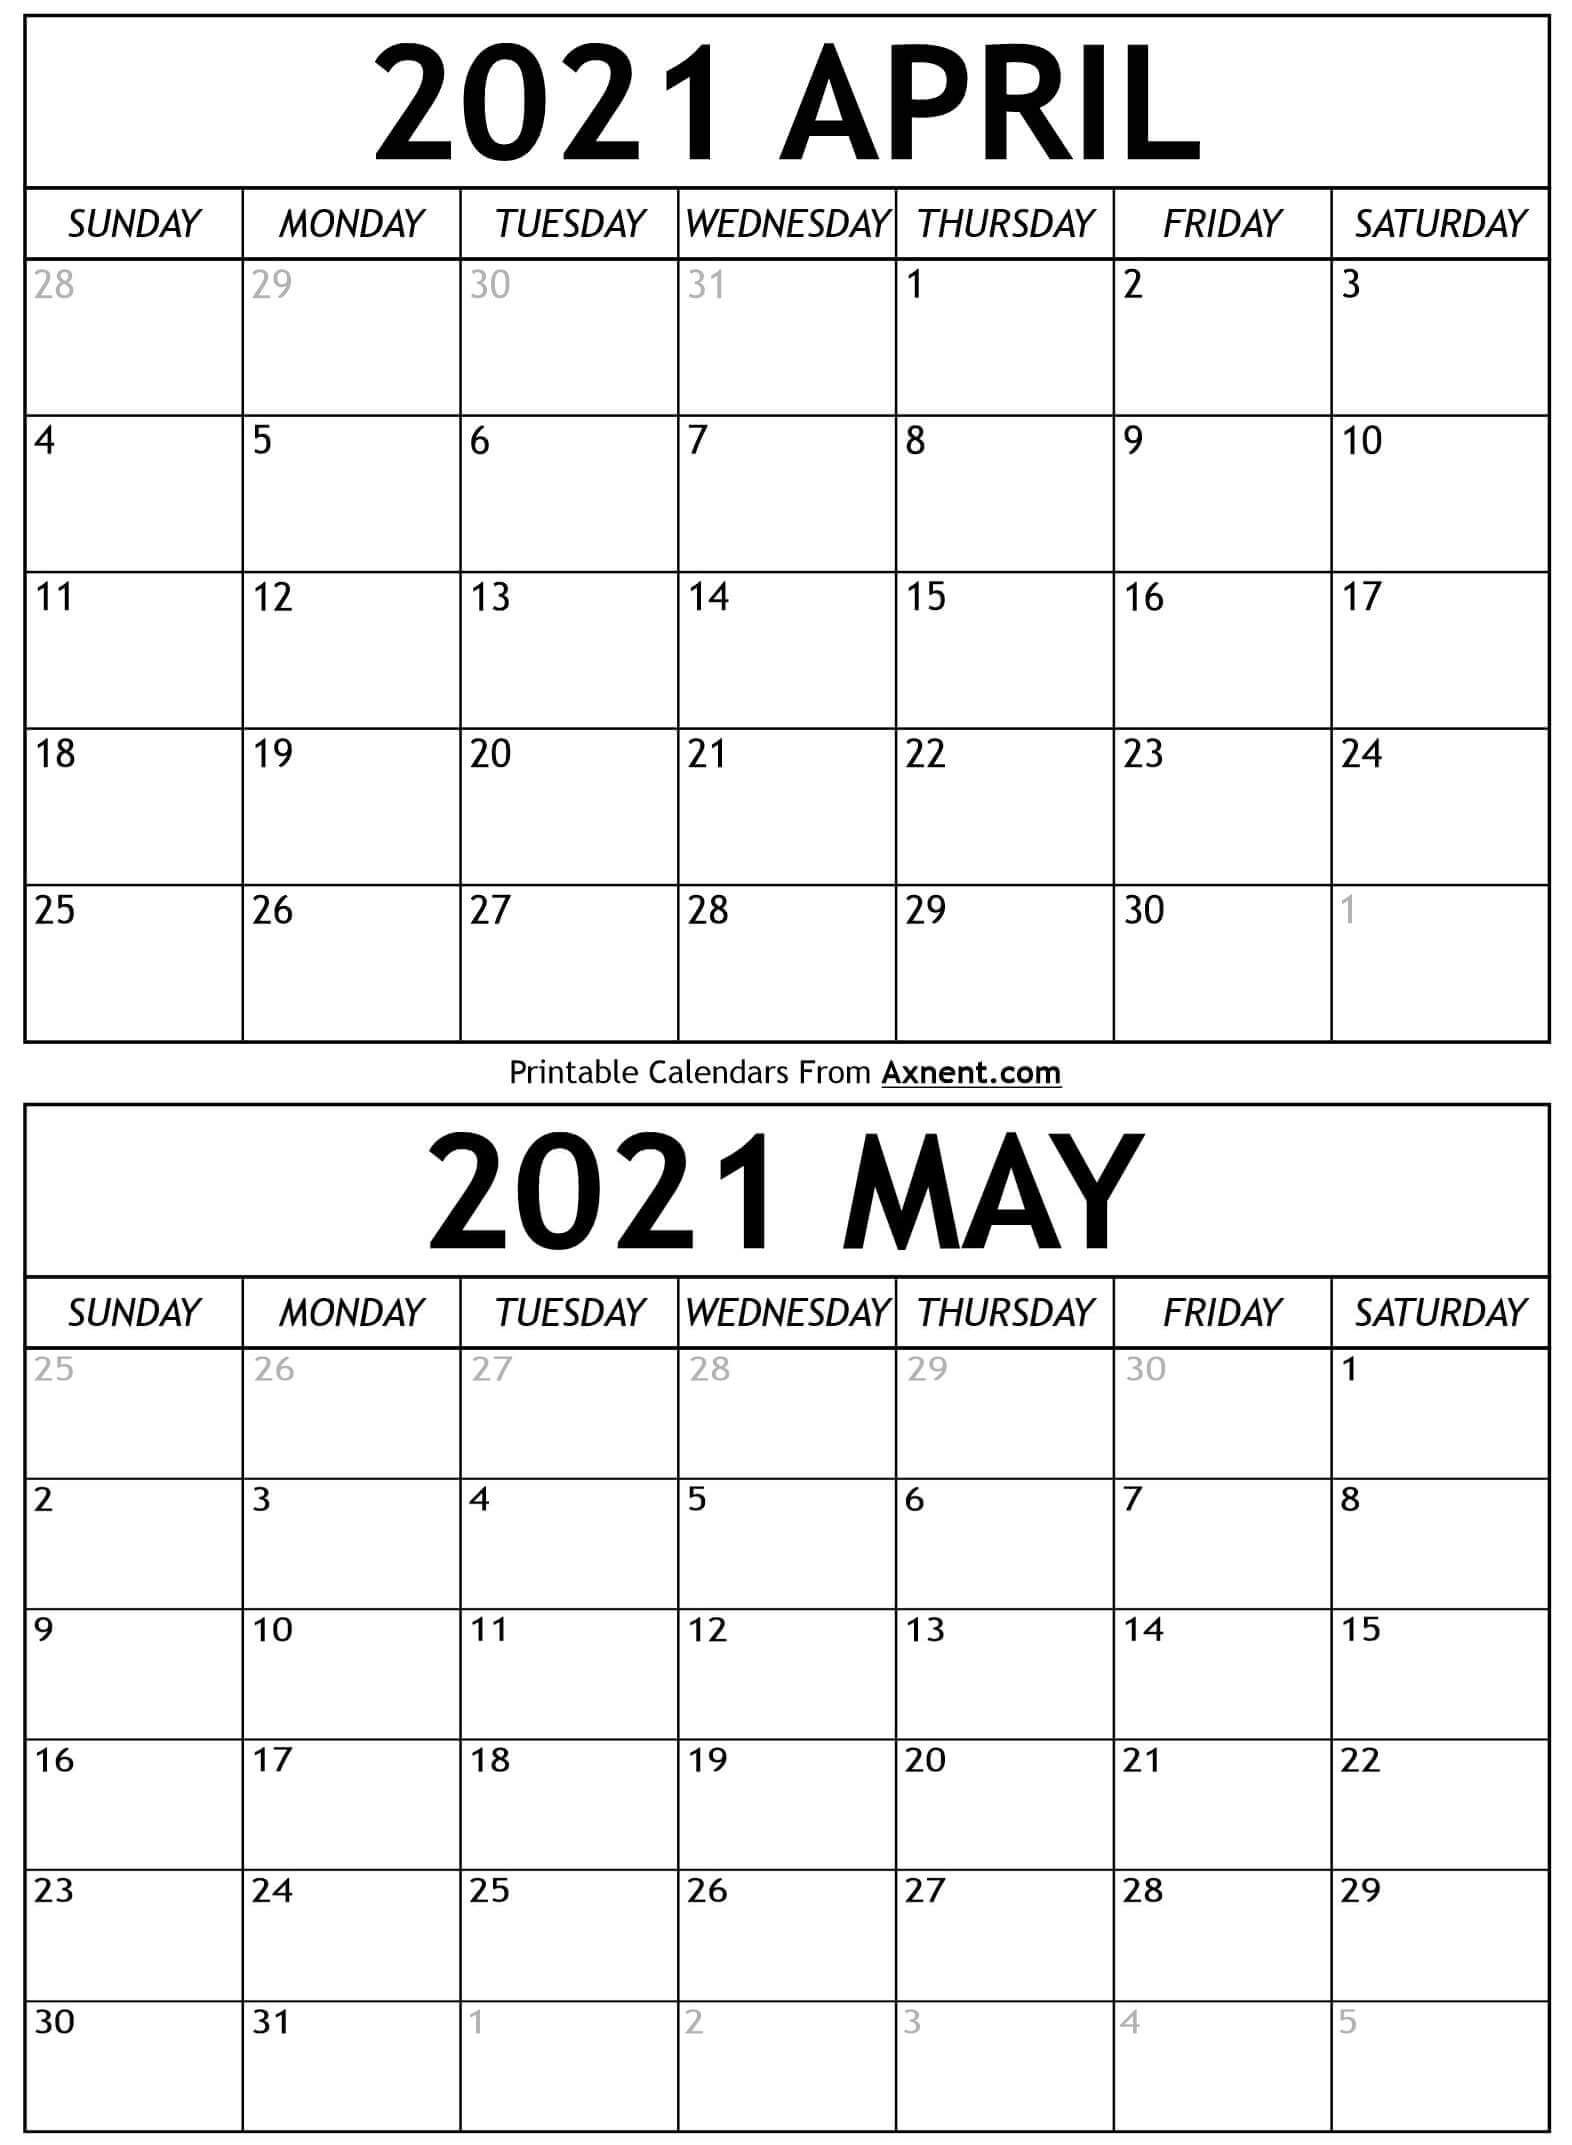 April May 2021 Calendar Templates - Time Management Tools